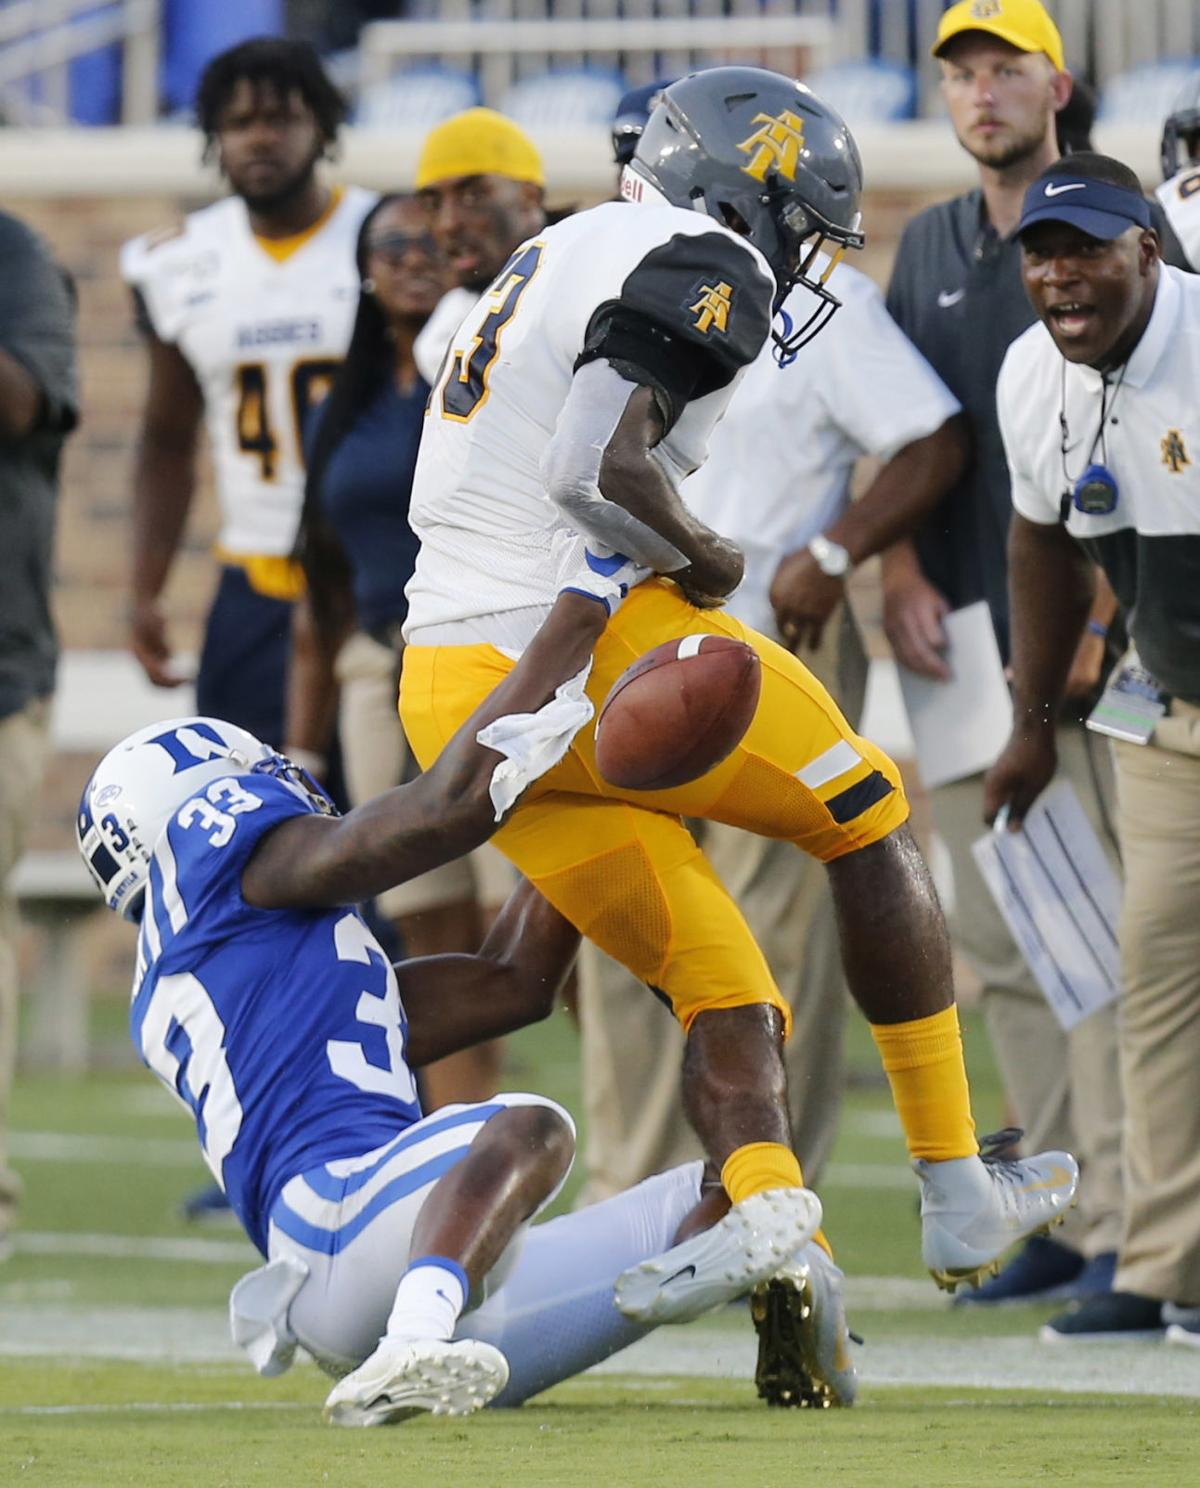 NC A&T loses 45-13, worn down by QB Quentin Harris and